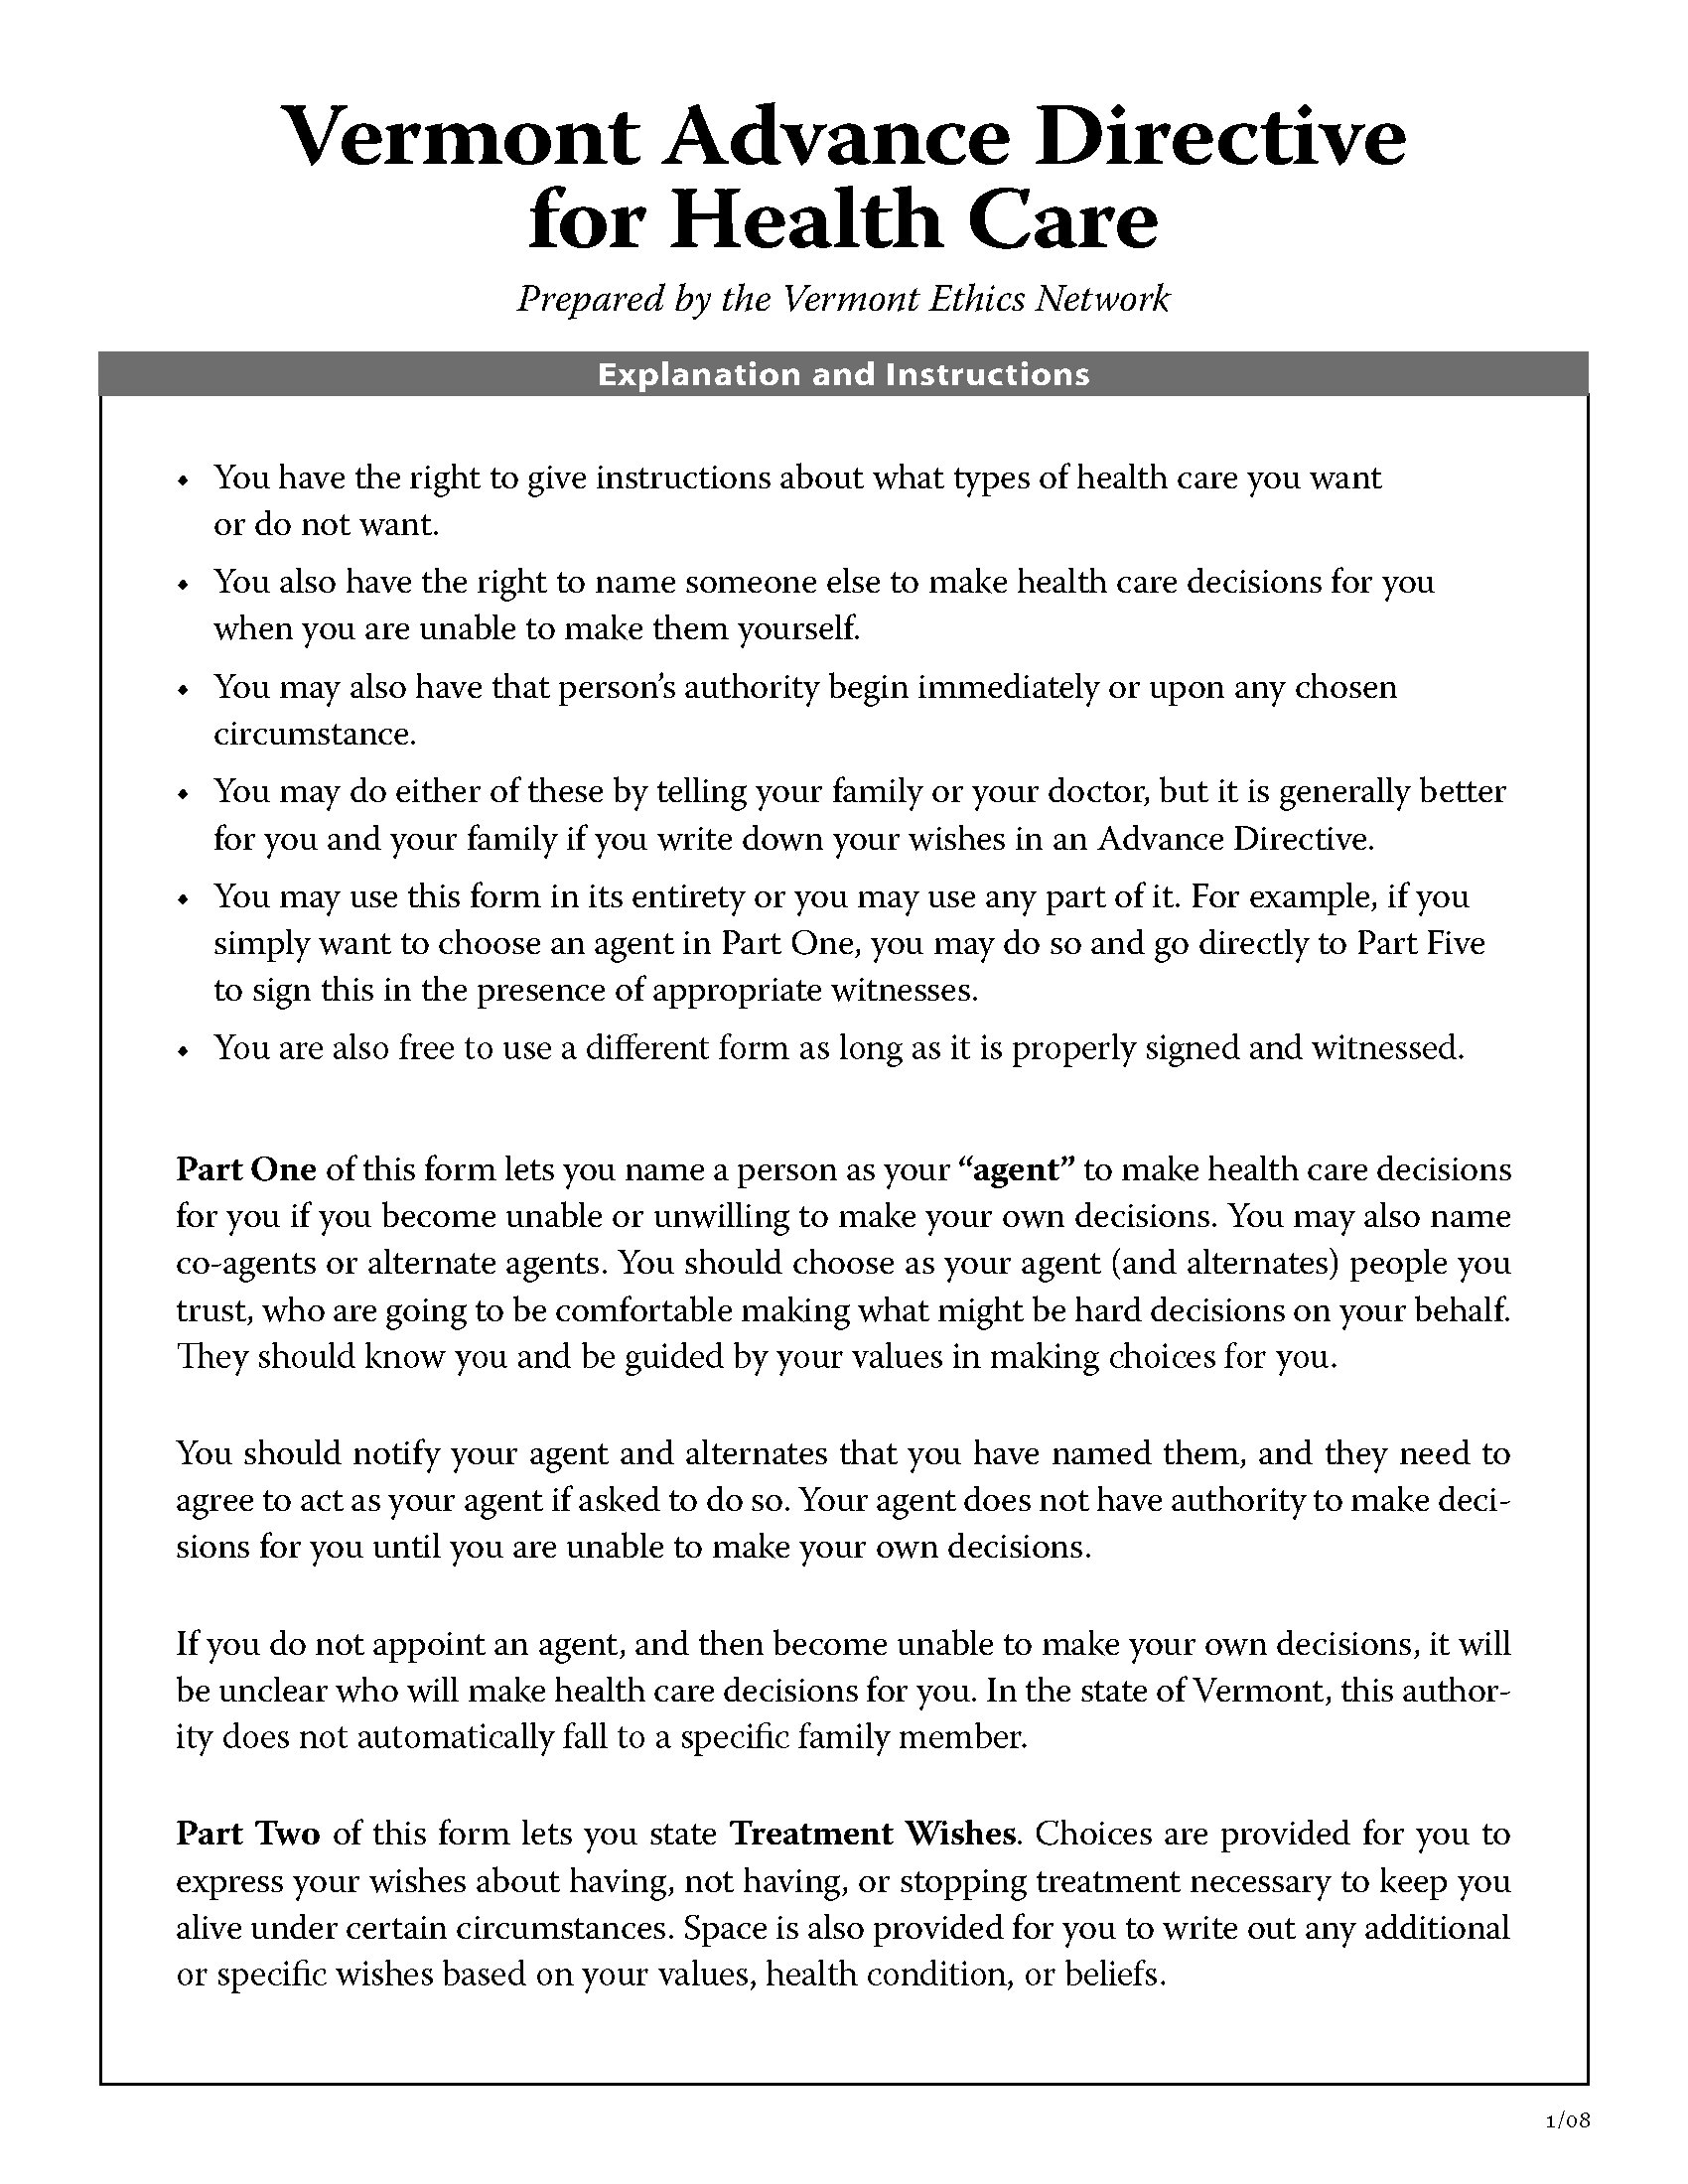 advanced directive template - vermont advance directive for health care short form